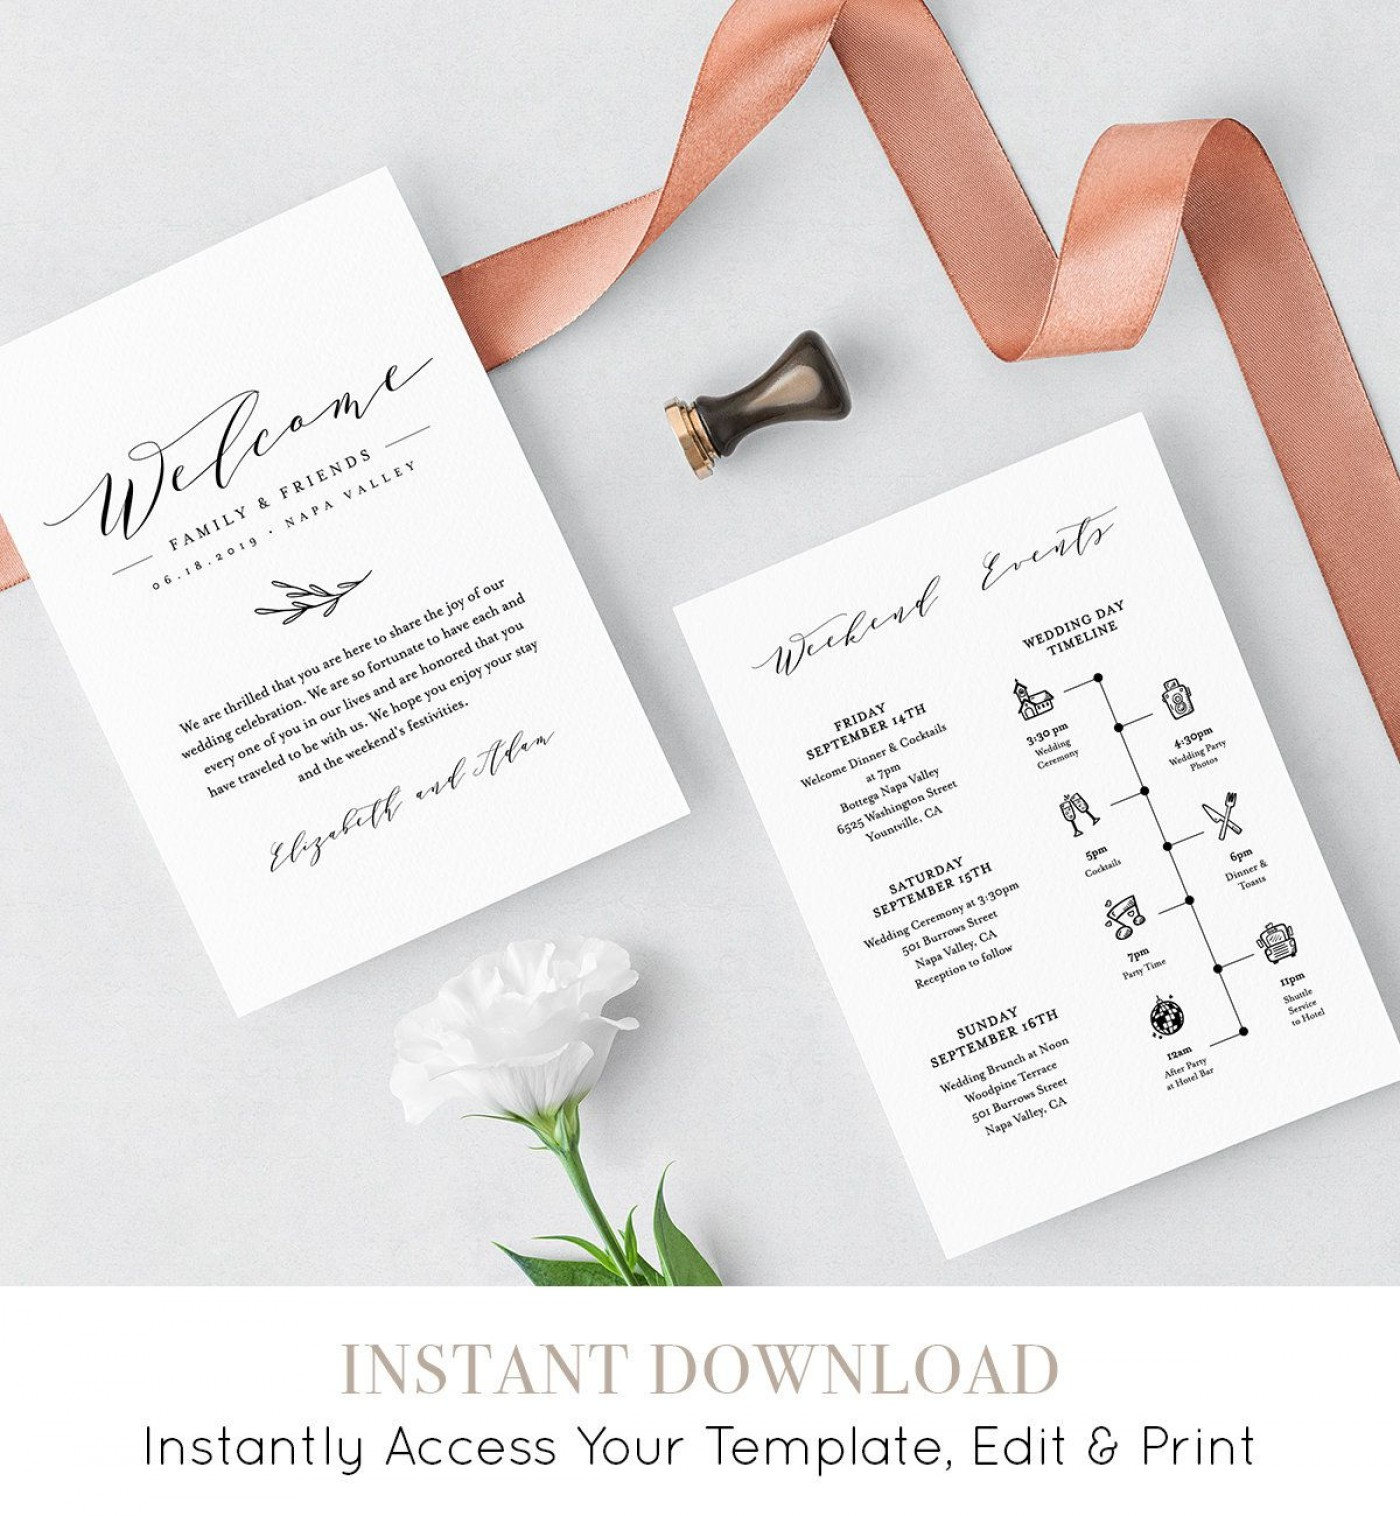 007 Fascinating Wedding Hotel Welcome Letter Template High Def 1400